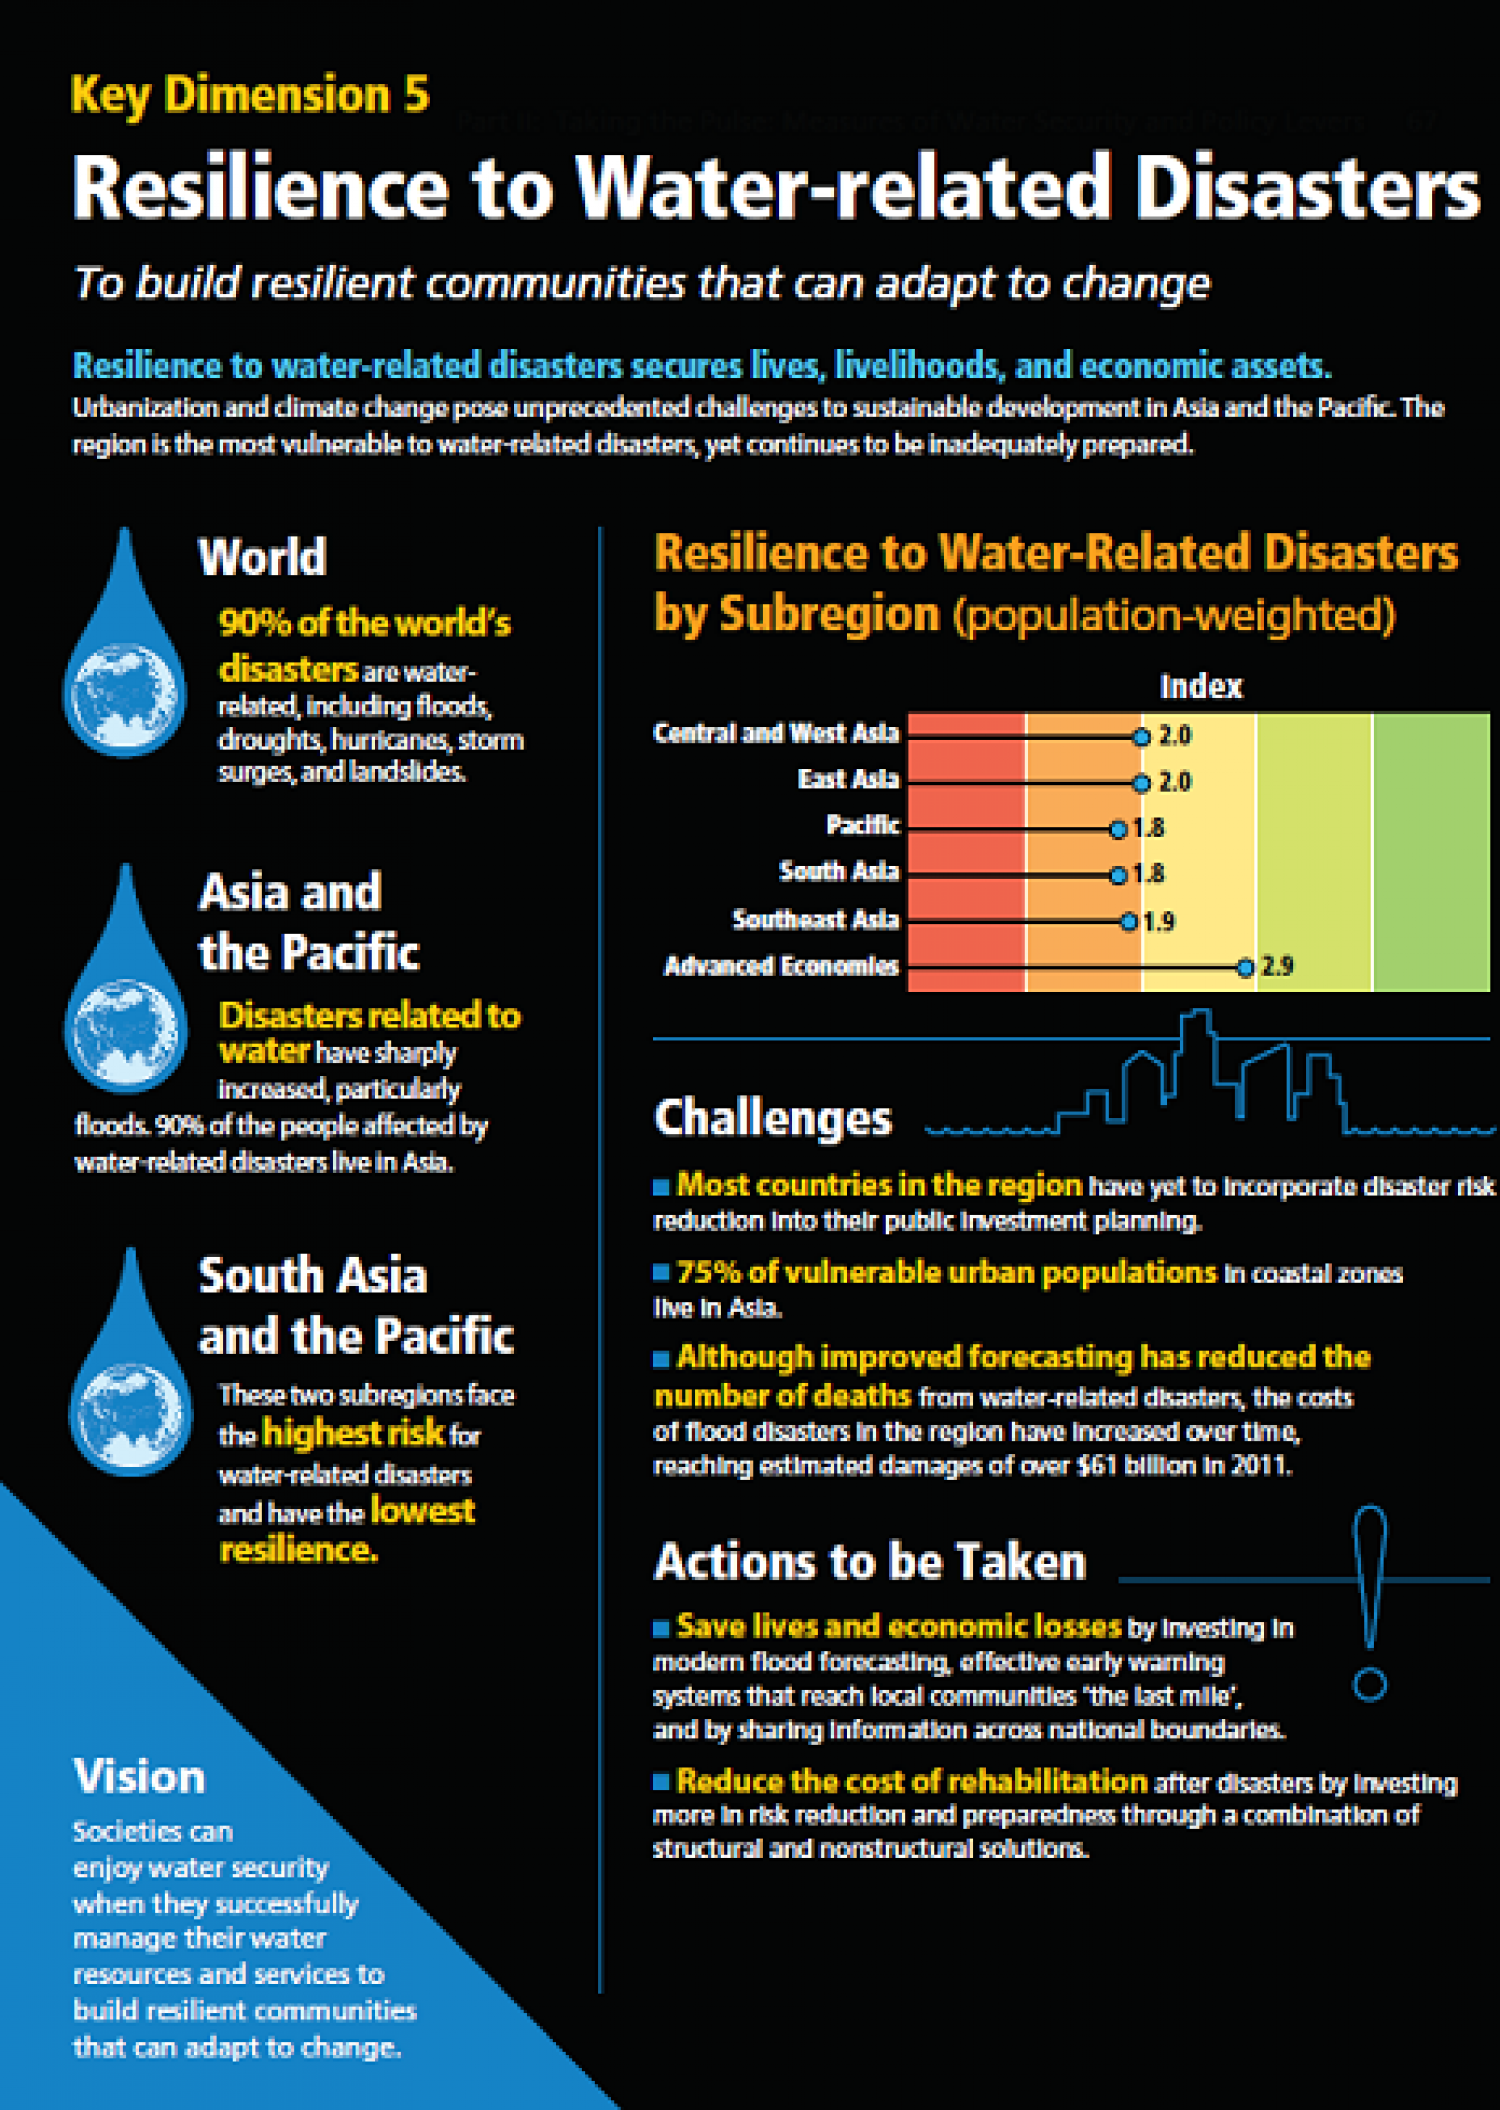 KEY DIMENSION 5 - RESILIENCE TO WATER-RELATED DISASTERS SECURES LIVES, LIVELIHOODS, AND ECONOMIC ASSETS. Infographic